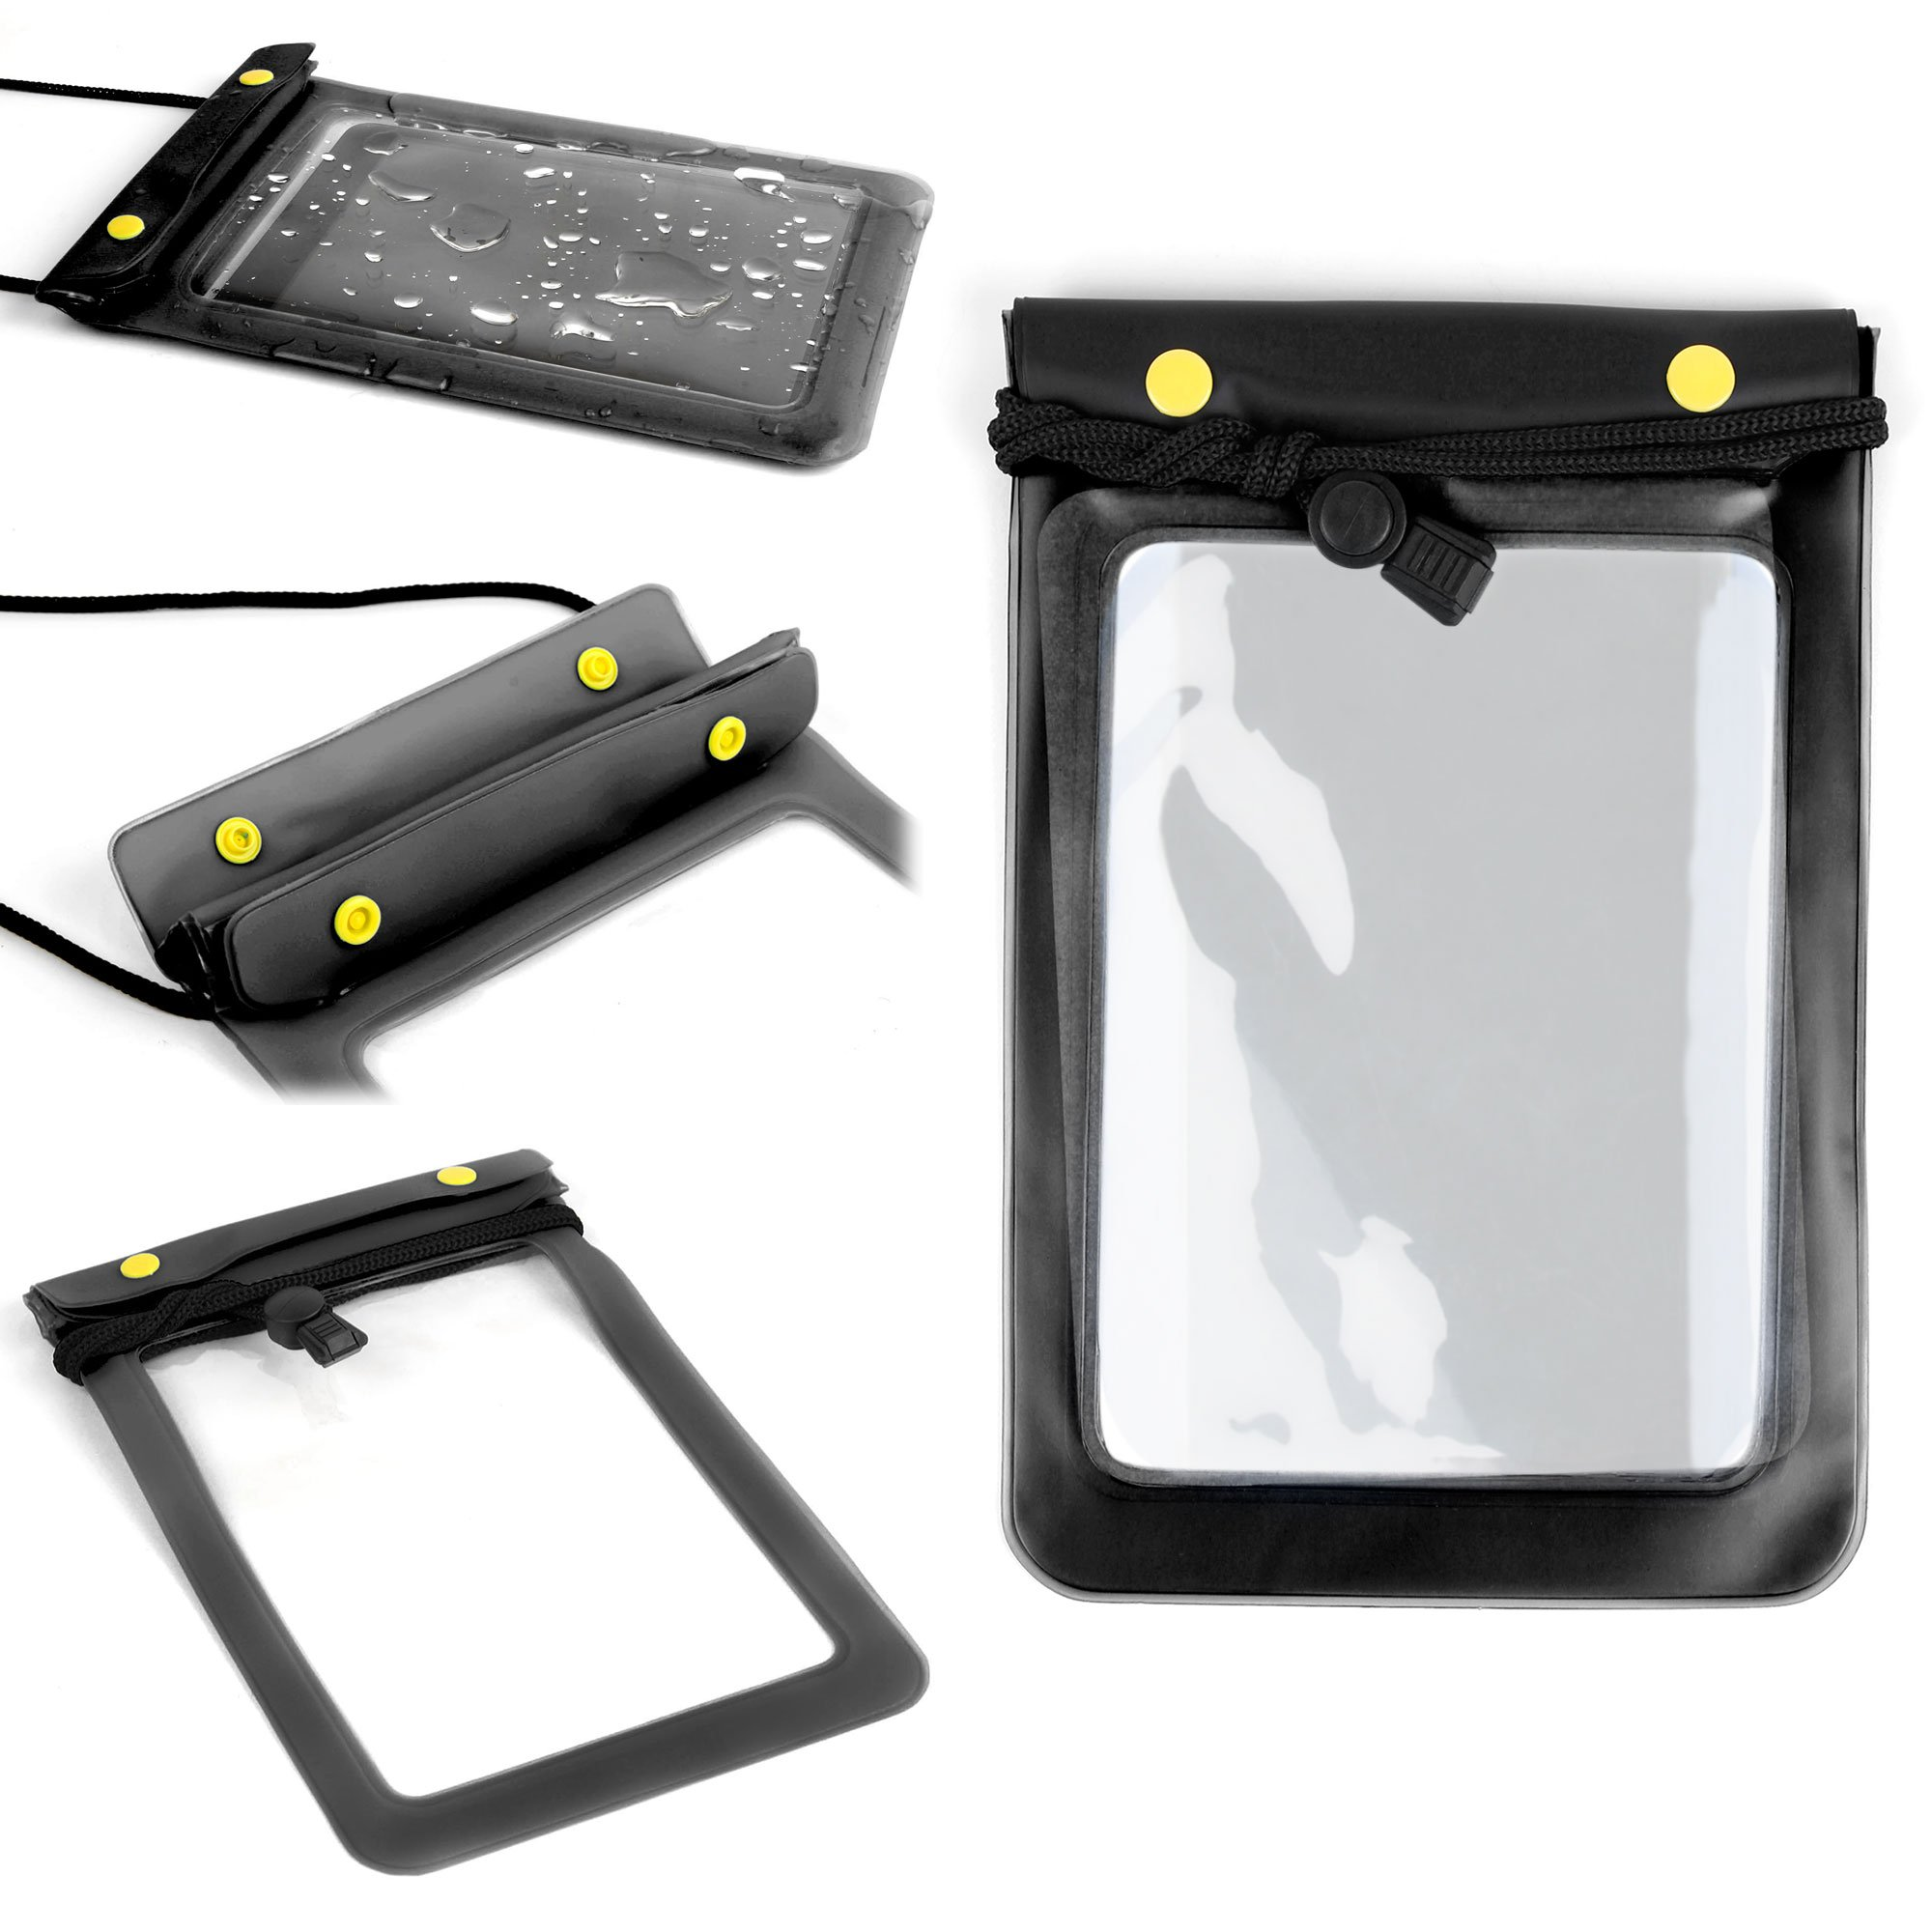 DURAGADGET Black All-Purpose Waterproof Tablet Dry Pouch With Neck Strap For Generic Double Power 7'' Tablet 8GB Memory Dual Core